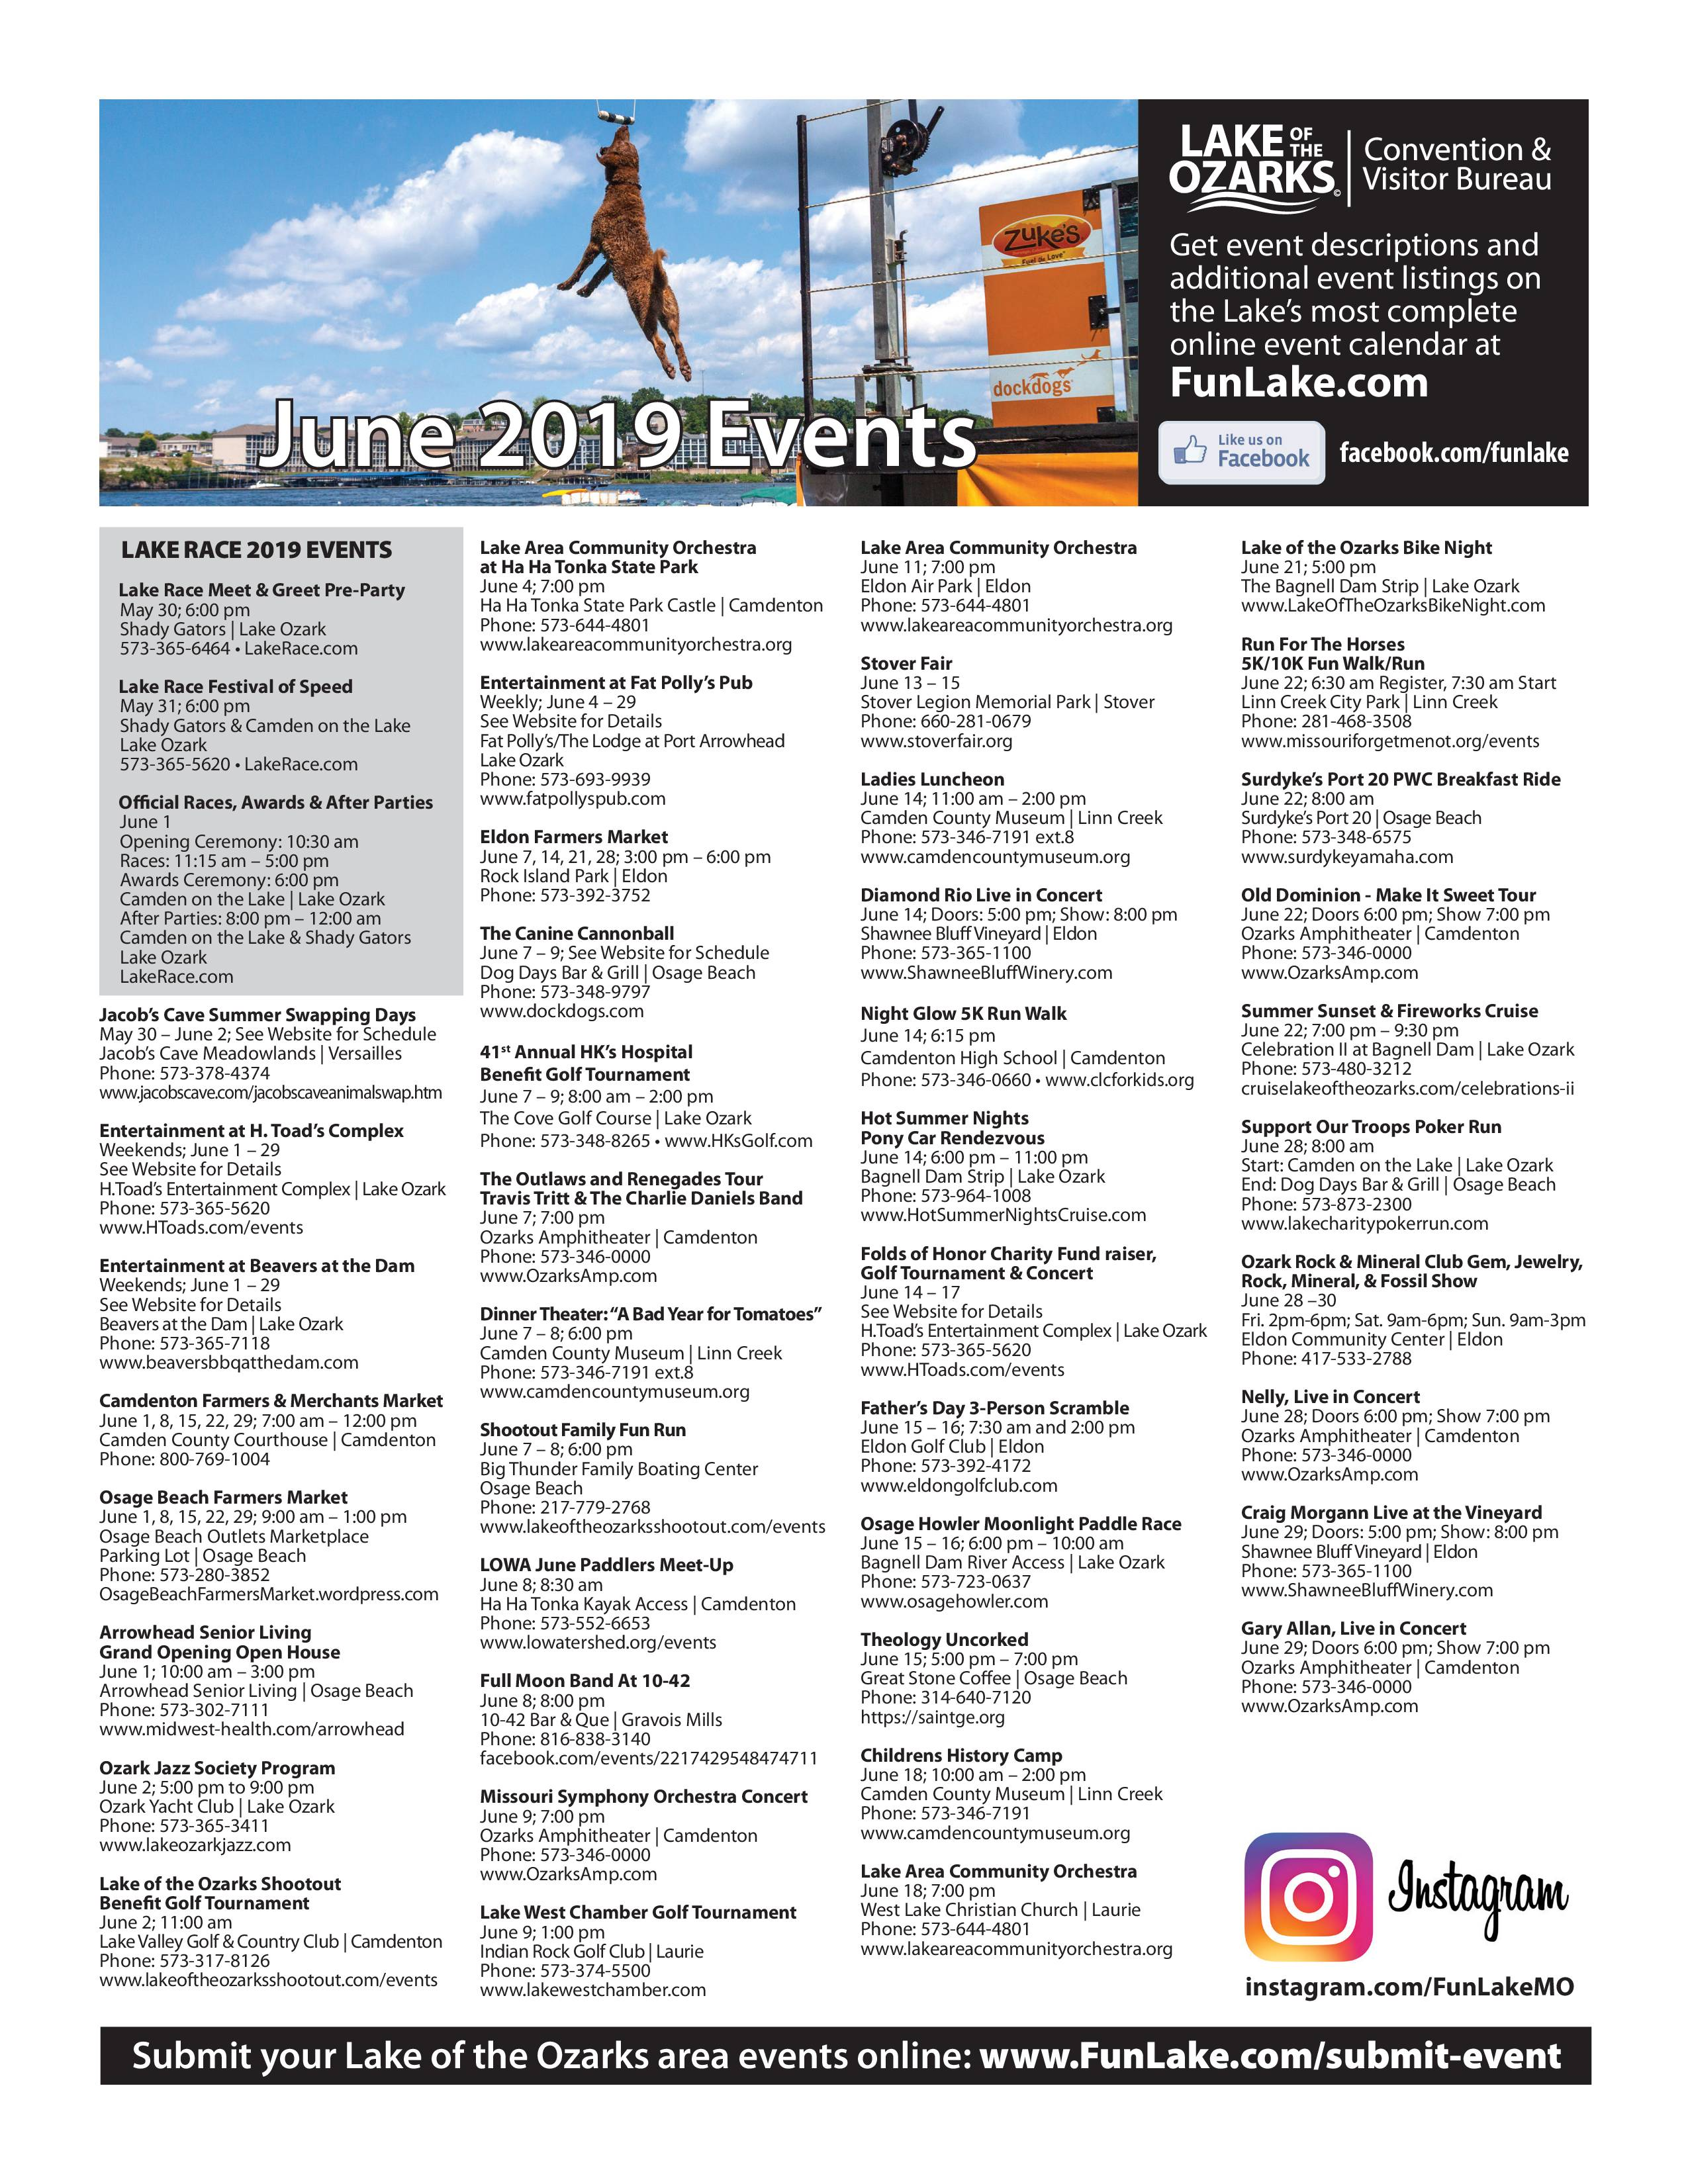 Lake of the Ozarks Event Calendar June 2019